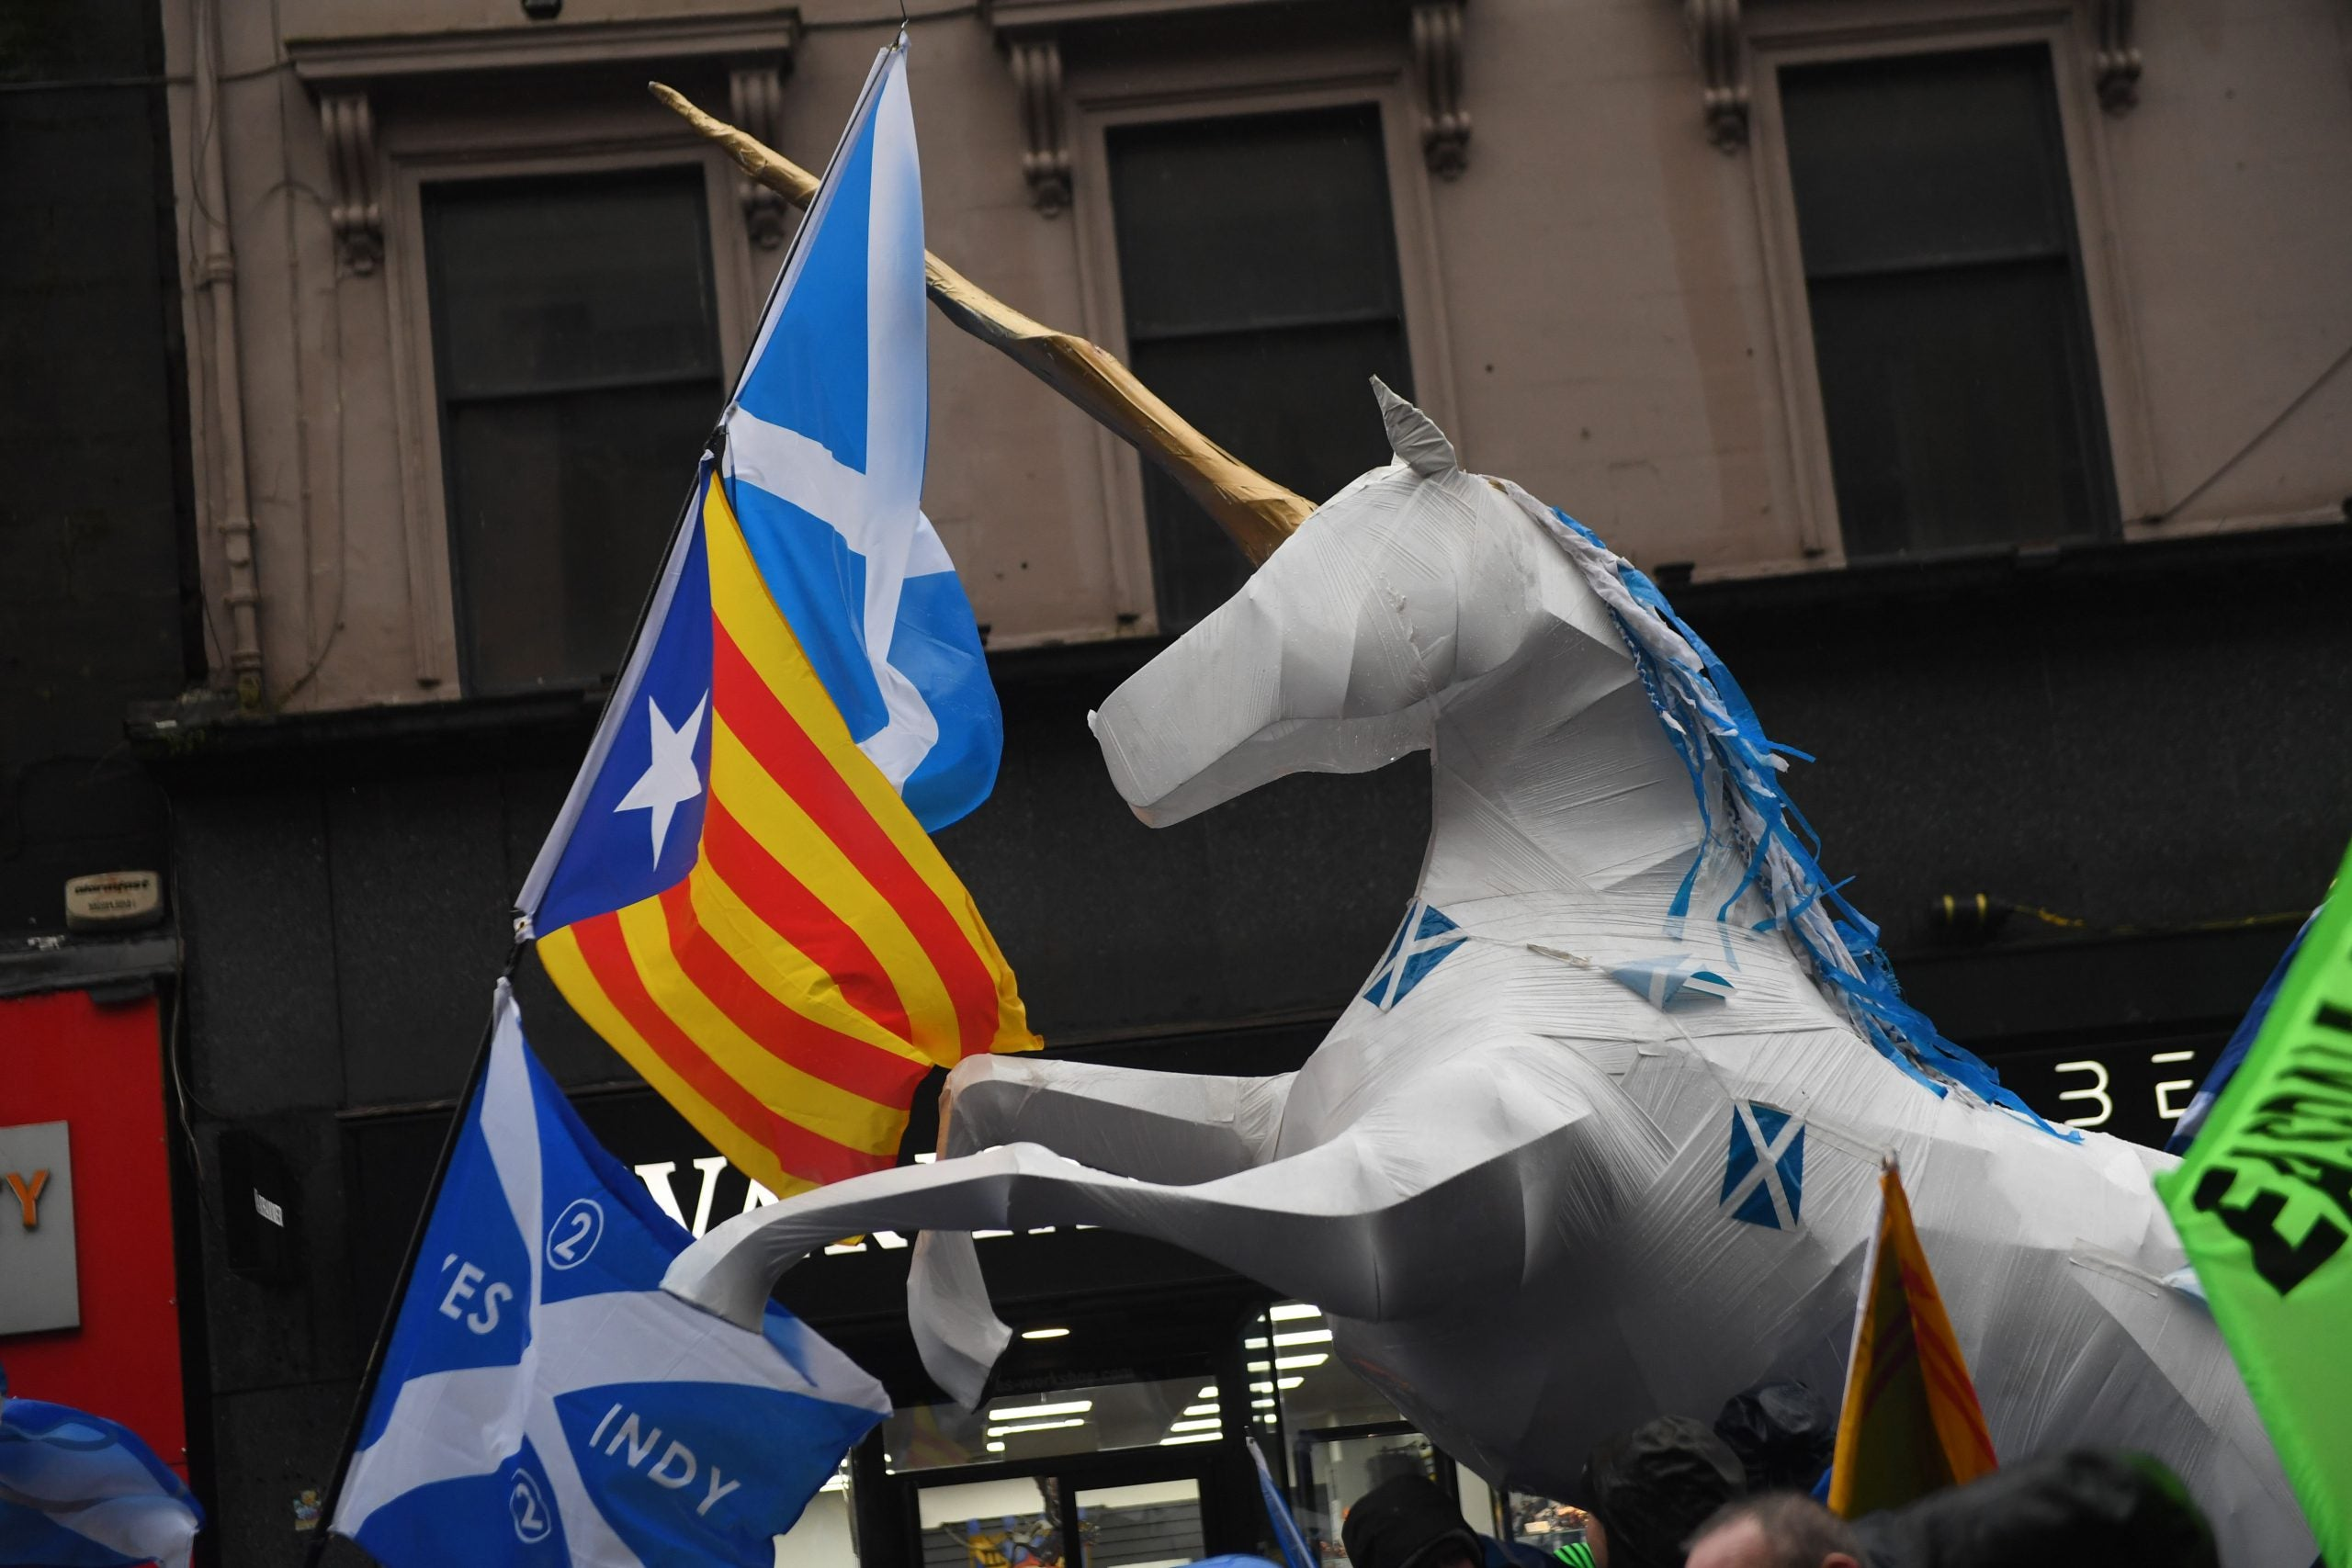 Scotland's dreaming: why the SNP appears unstoppable